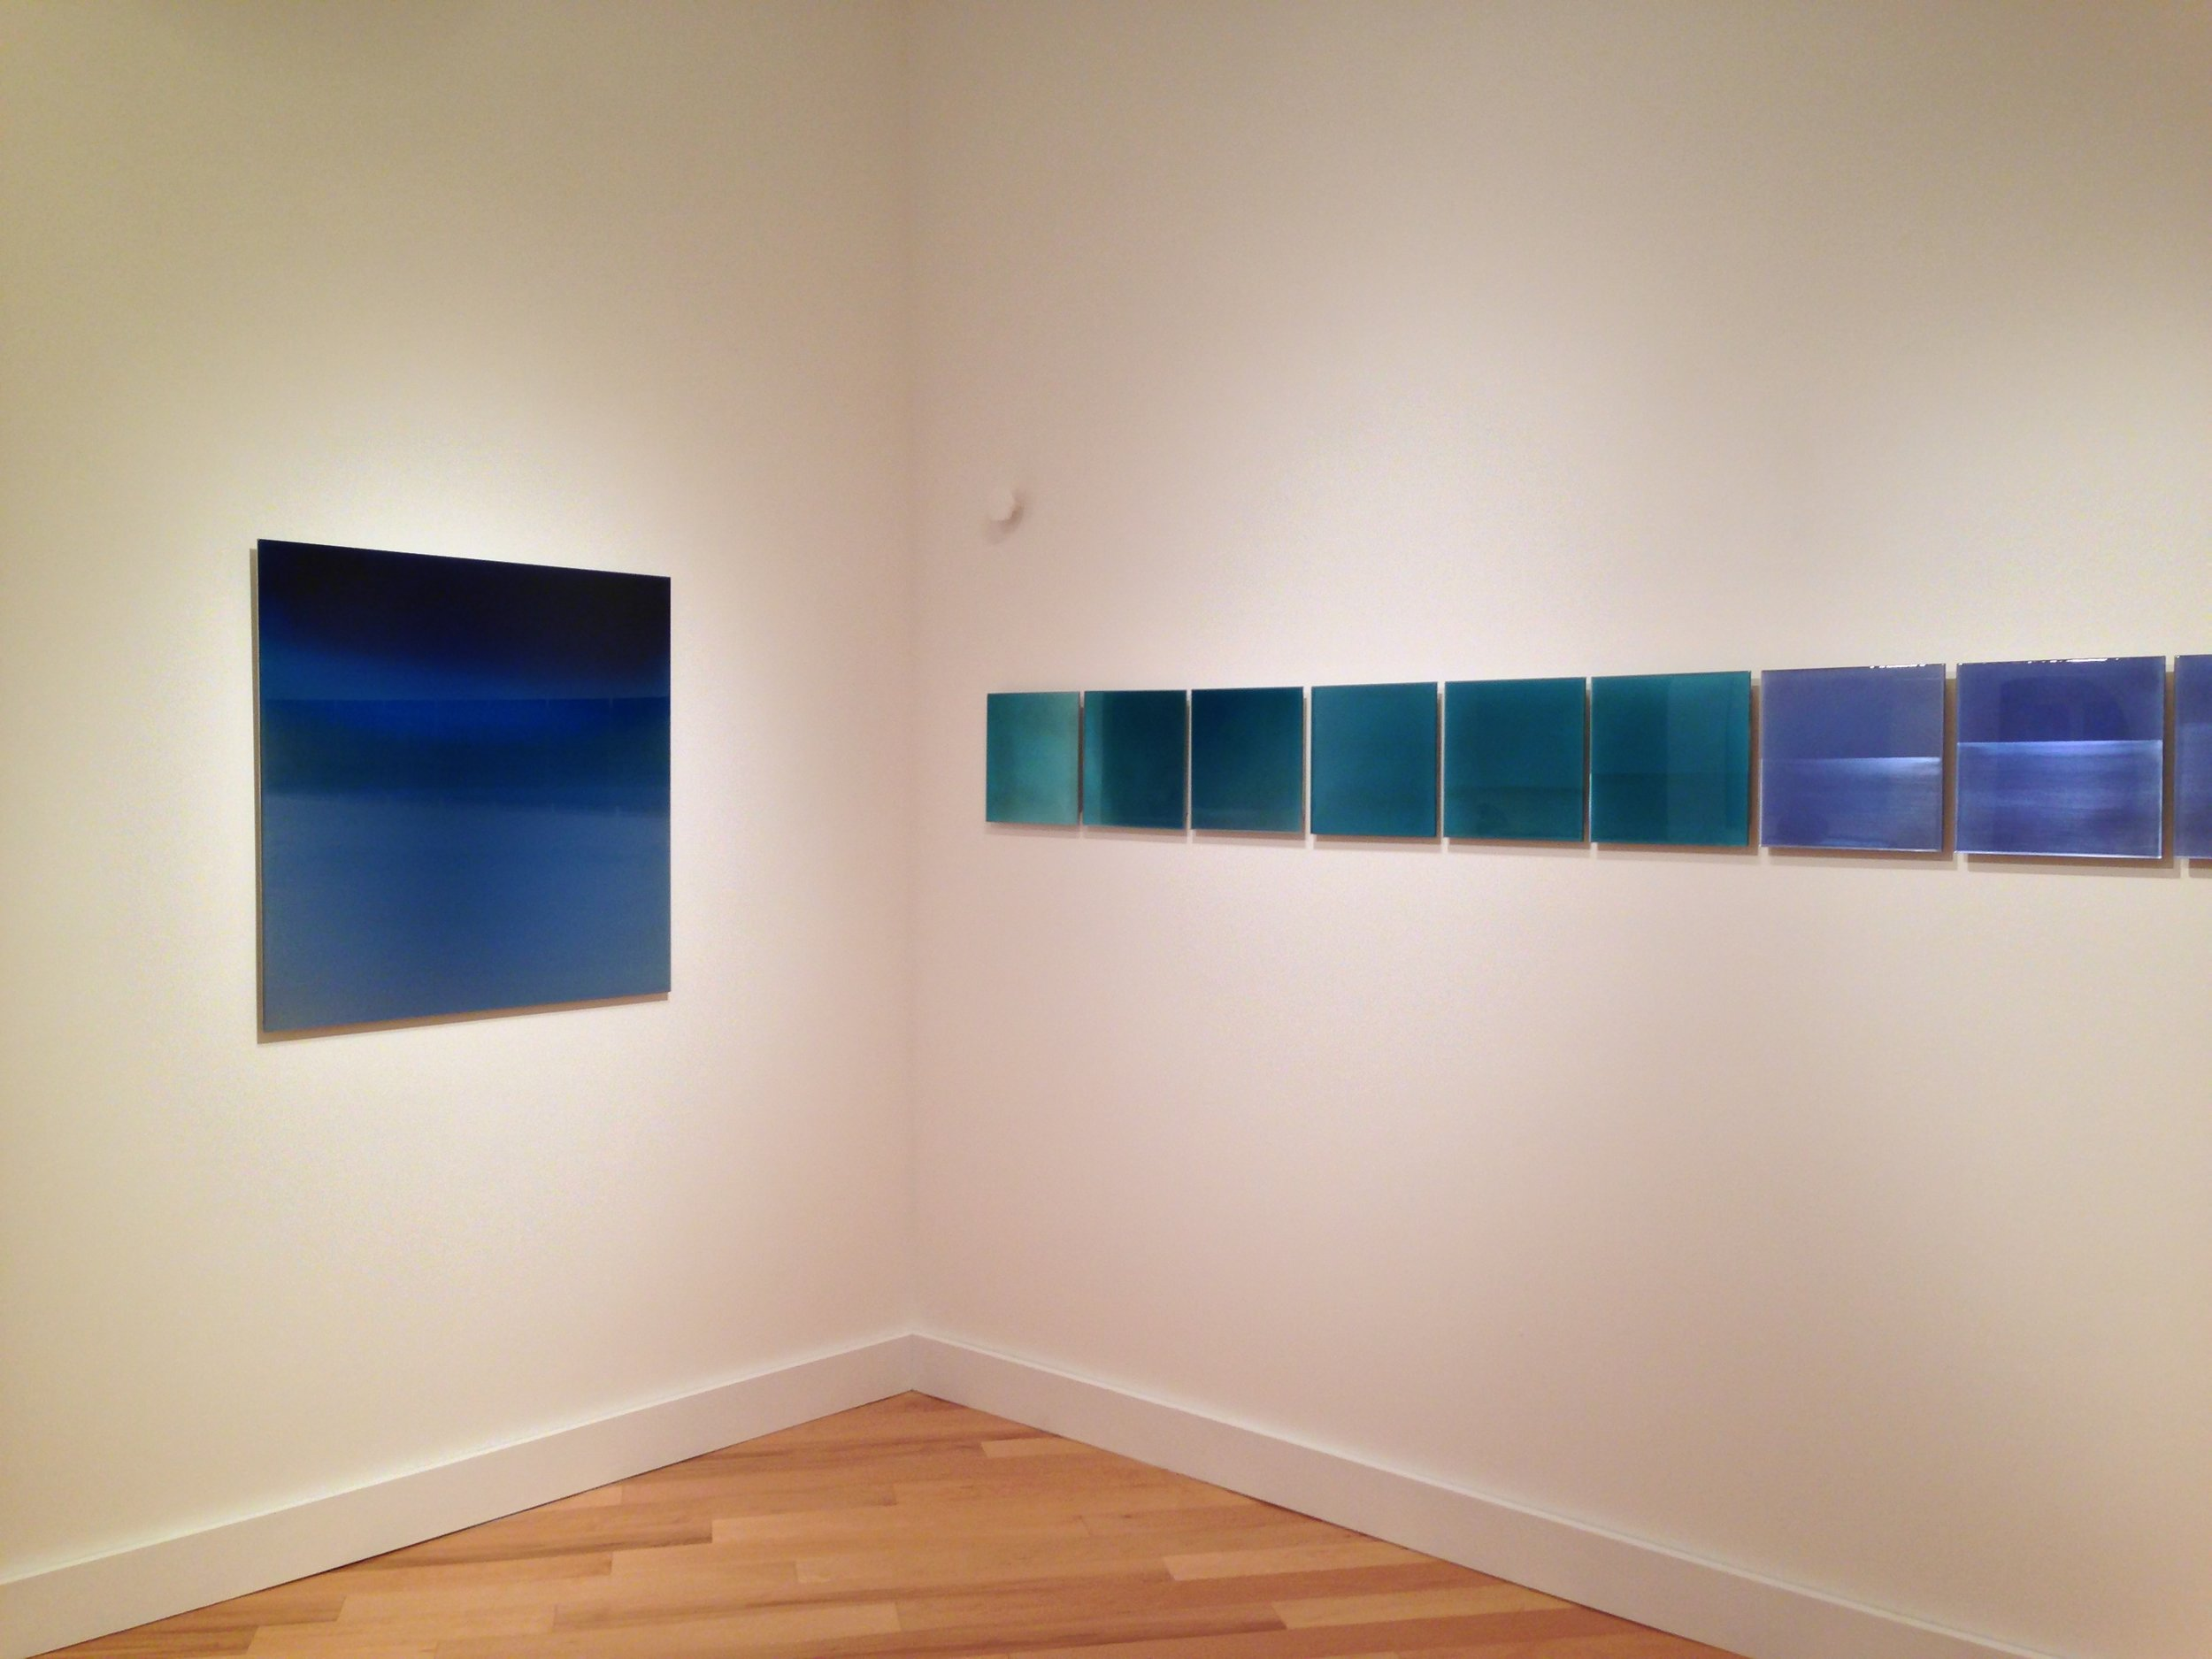 """TIDES & THE PHASES OF THE MOON,"" K IMPERIAL GALLERY, SAN FRANCISCO 2013"